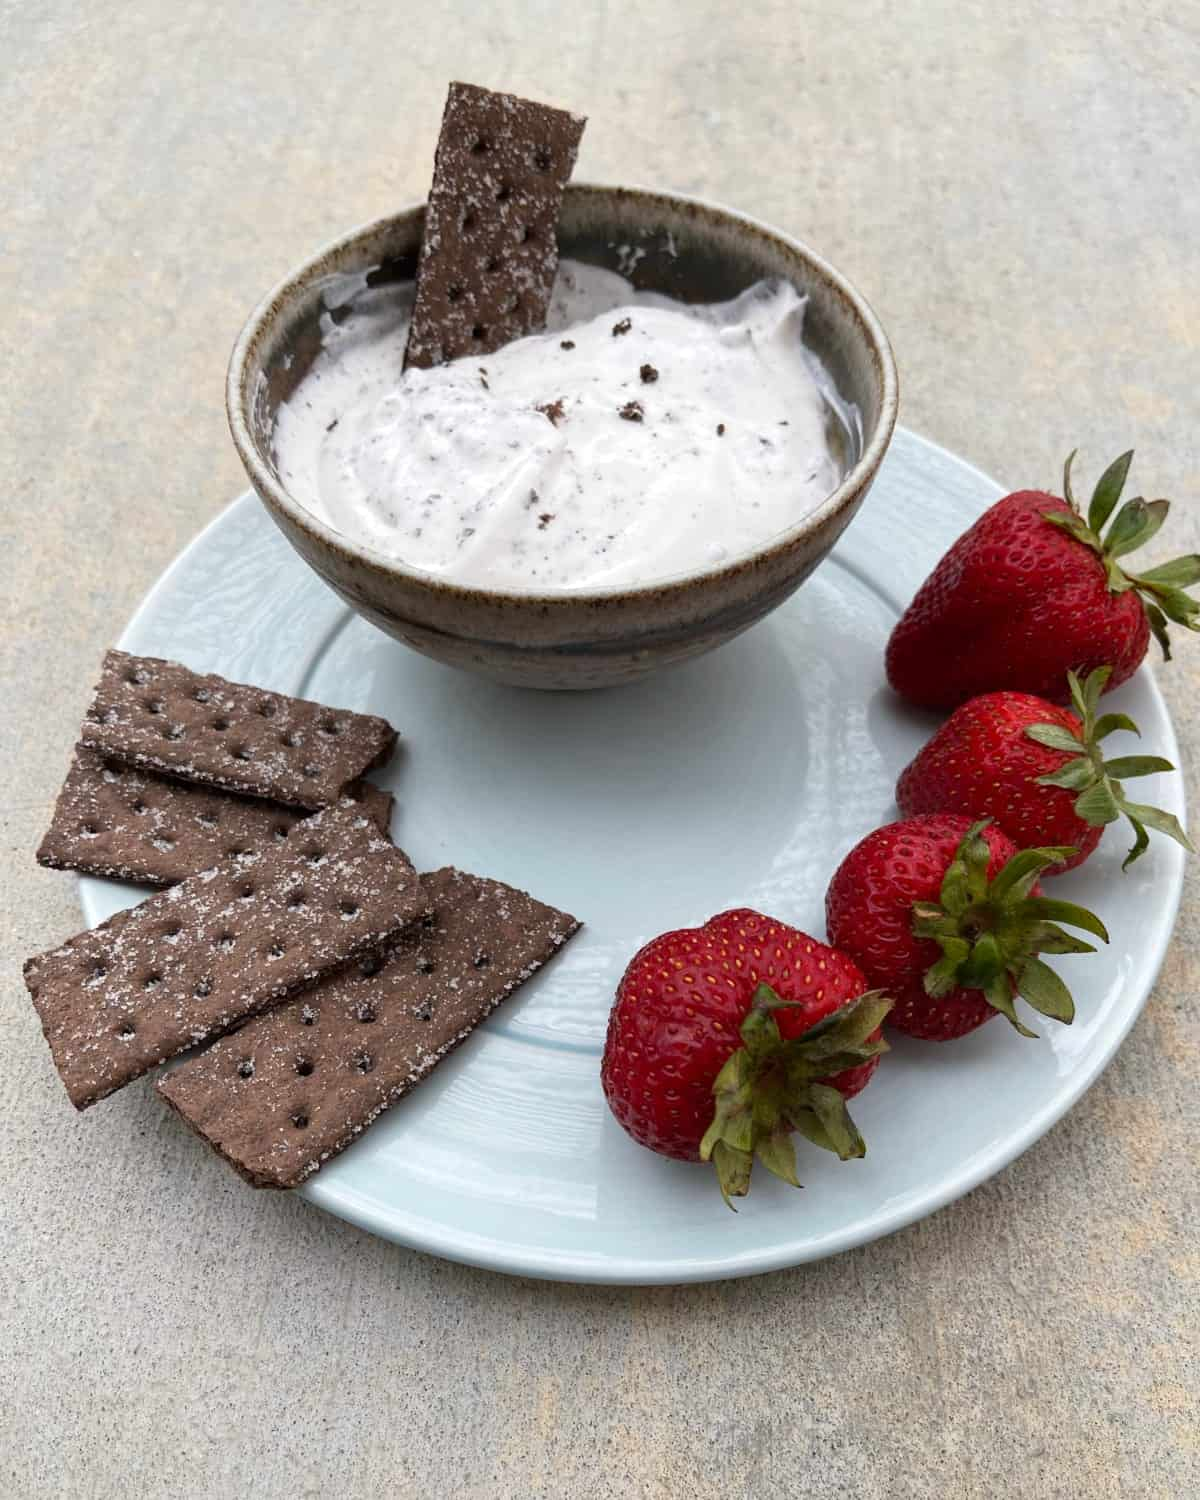 Bowl of cookies 'n cream dip with small plate of chocolate graham crackers and fresh strawberries